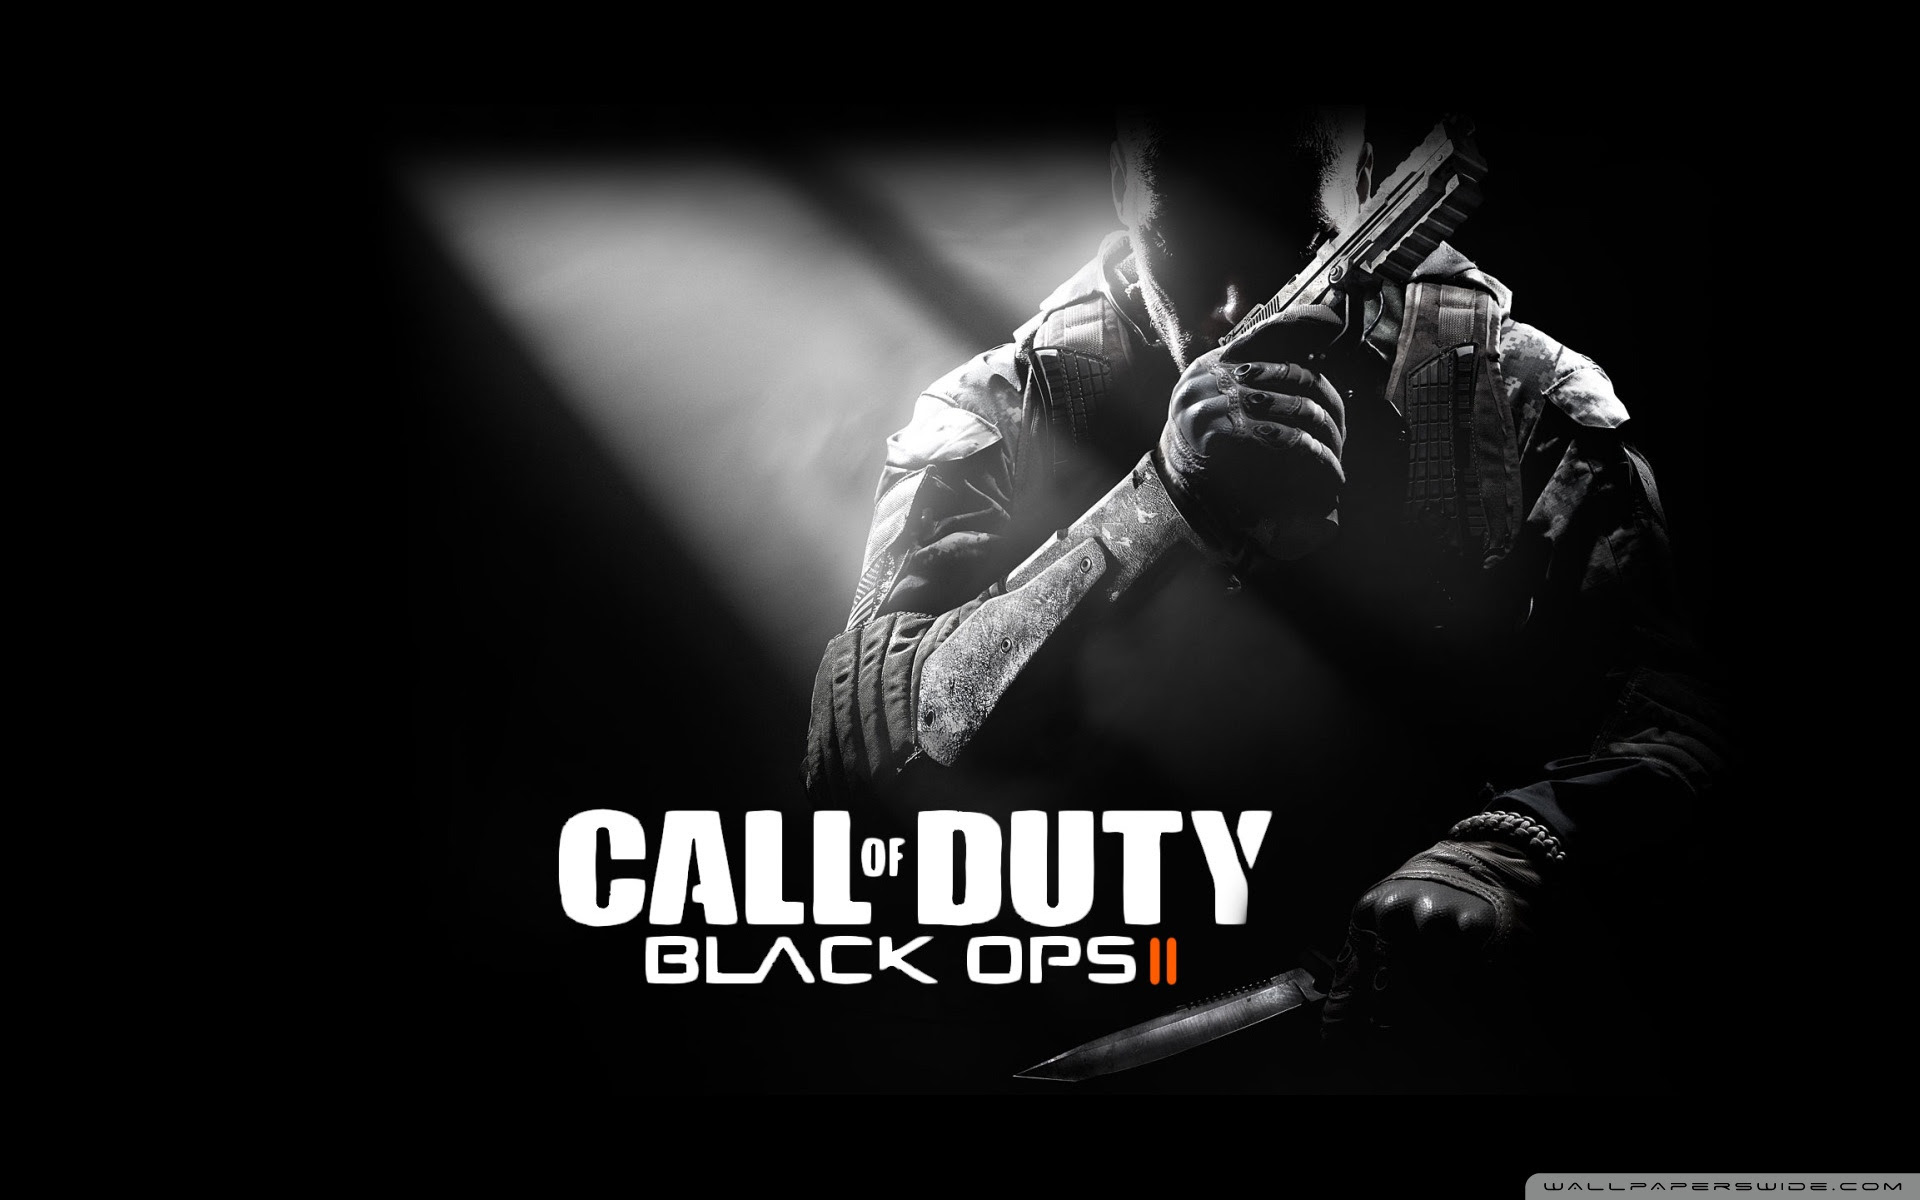 call of duty black ops 2 hd wide wallpaper for 4k uhd widescreen desktop smartphone